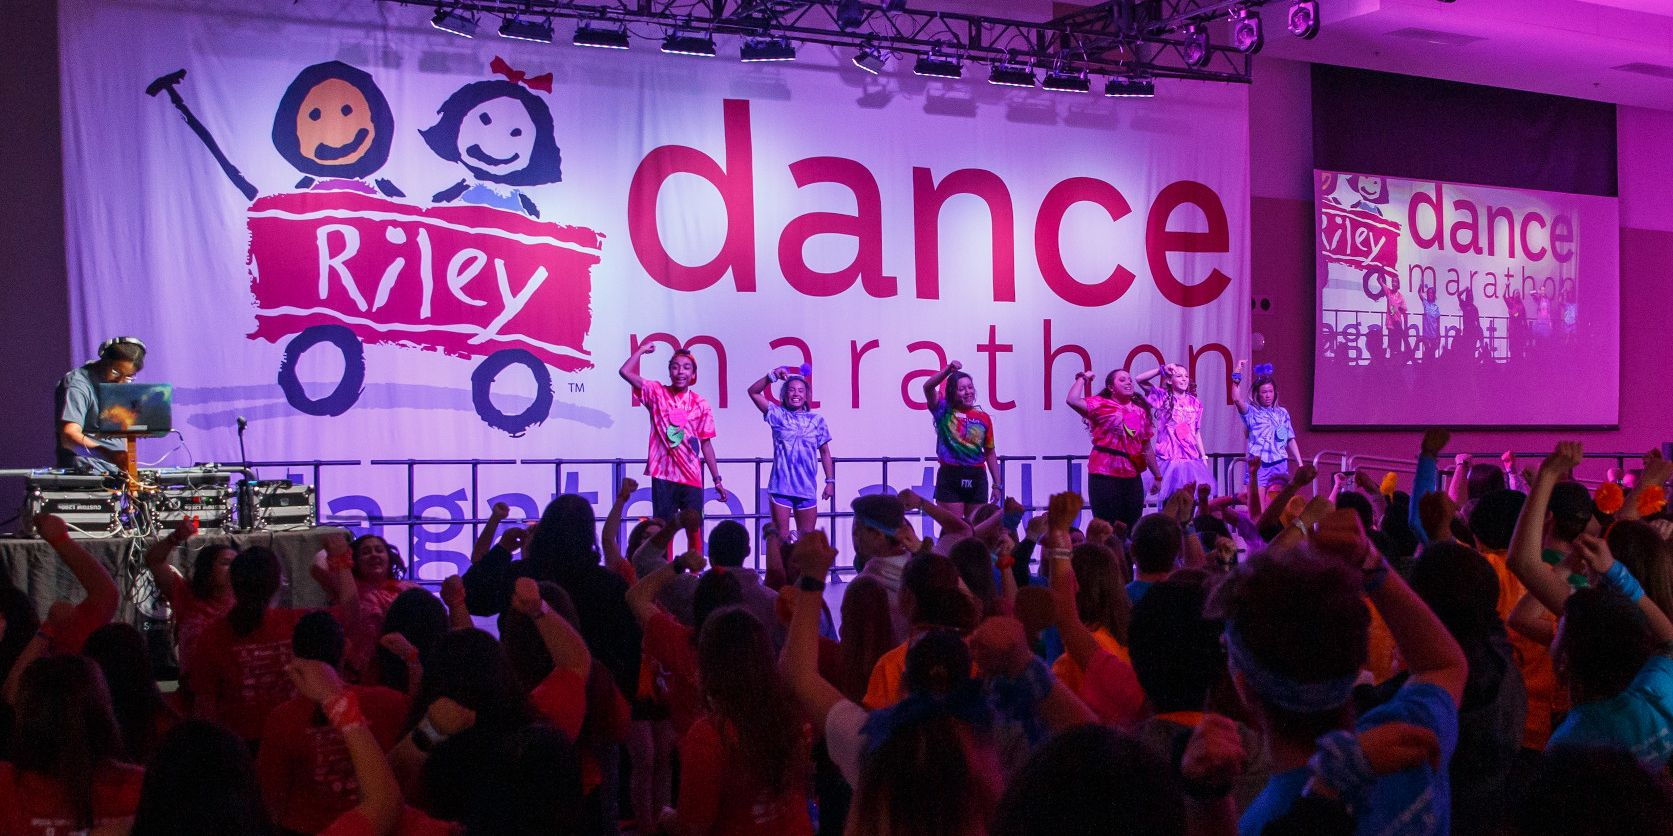 A large crowd packs the room at Jagathon, dancing along with the people onstage